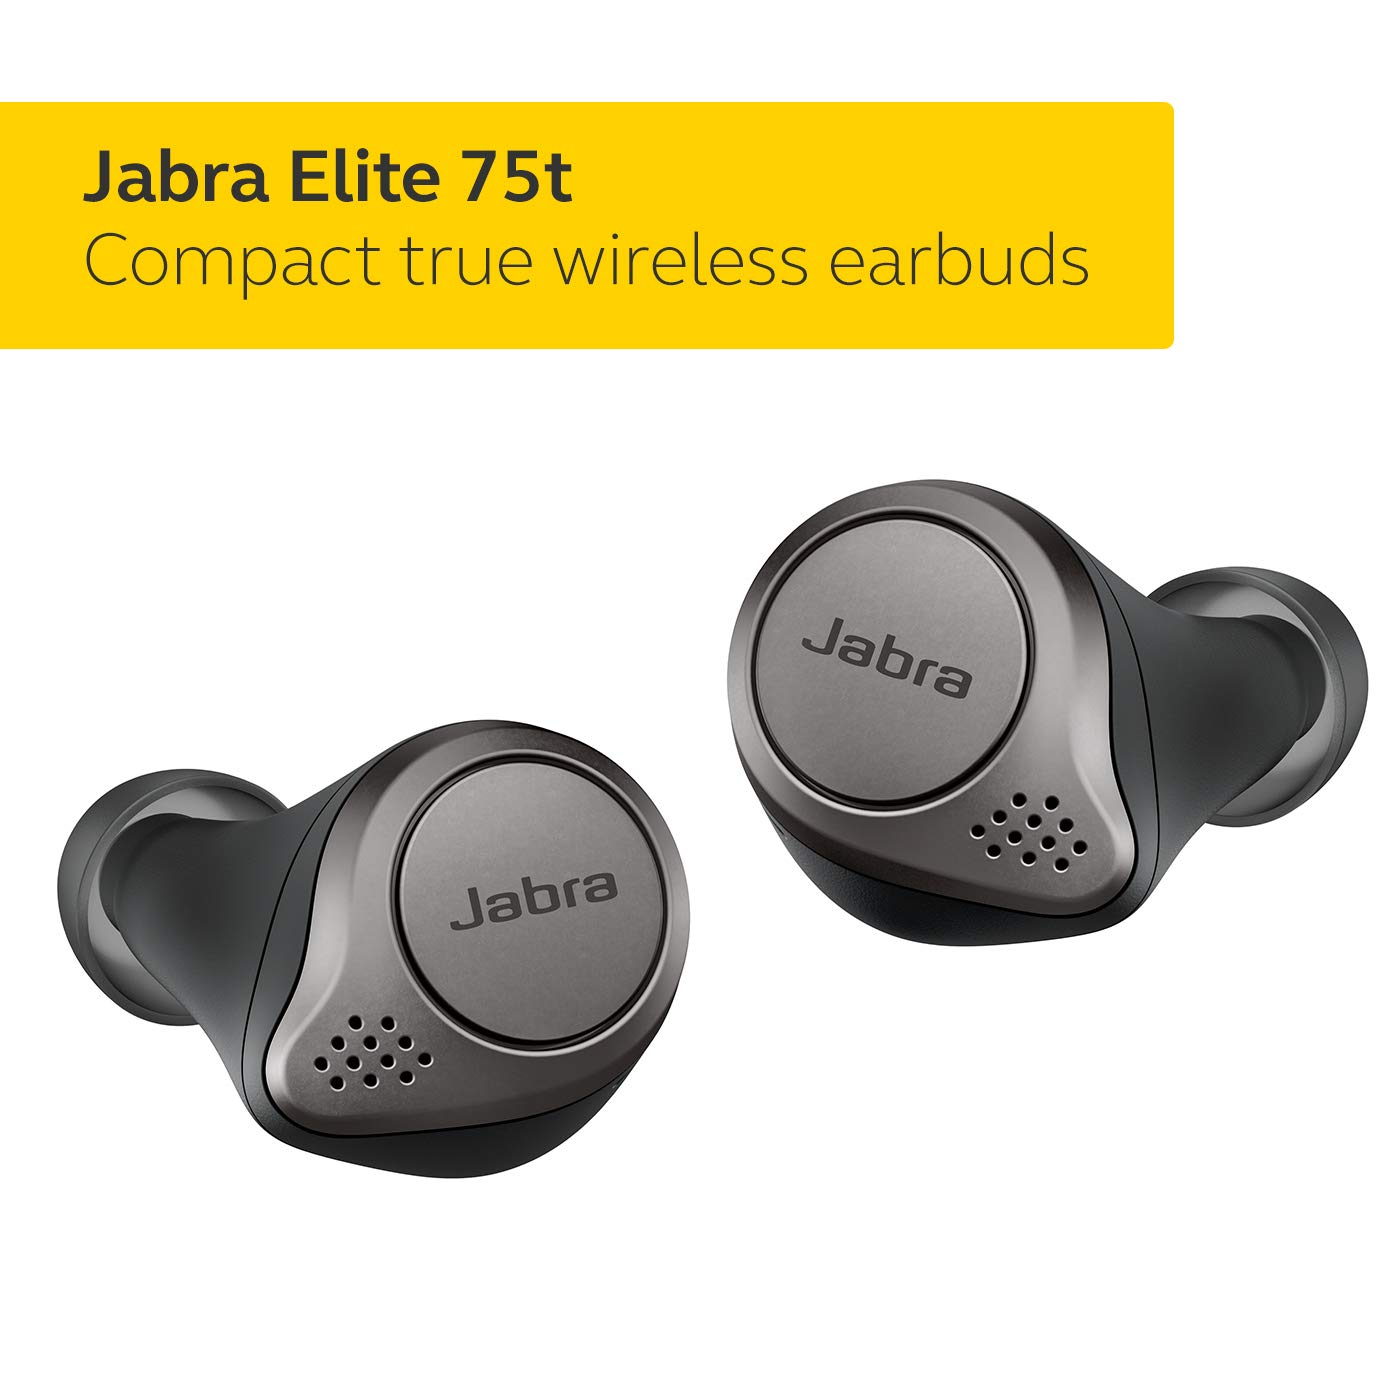 Jabra Elite 75t Earbuds - Alexa Enabled, True Wireless Earbuds with Charging Case, Titanium Black - Bluetooth Earbuds with a More Comfortable, Secure Fit, Long Battery Life and Great Sound Quality by Jabra